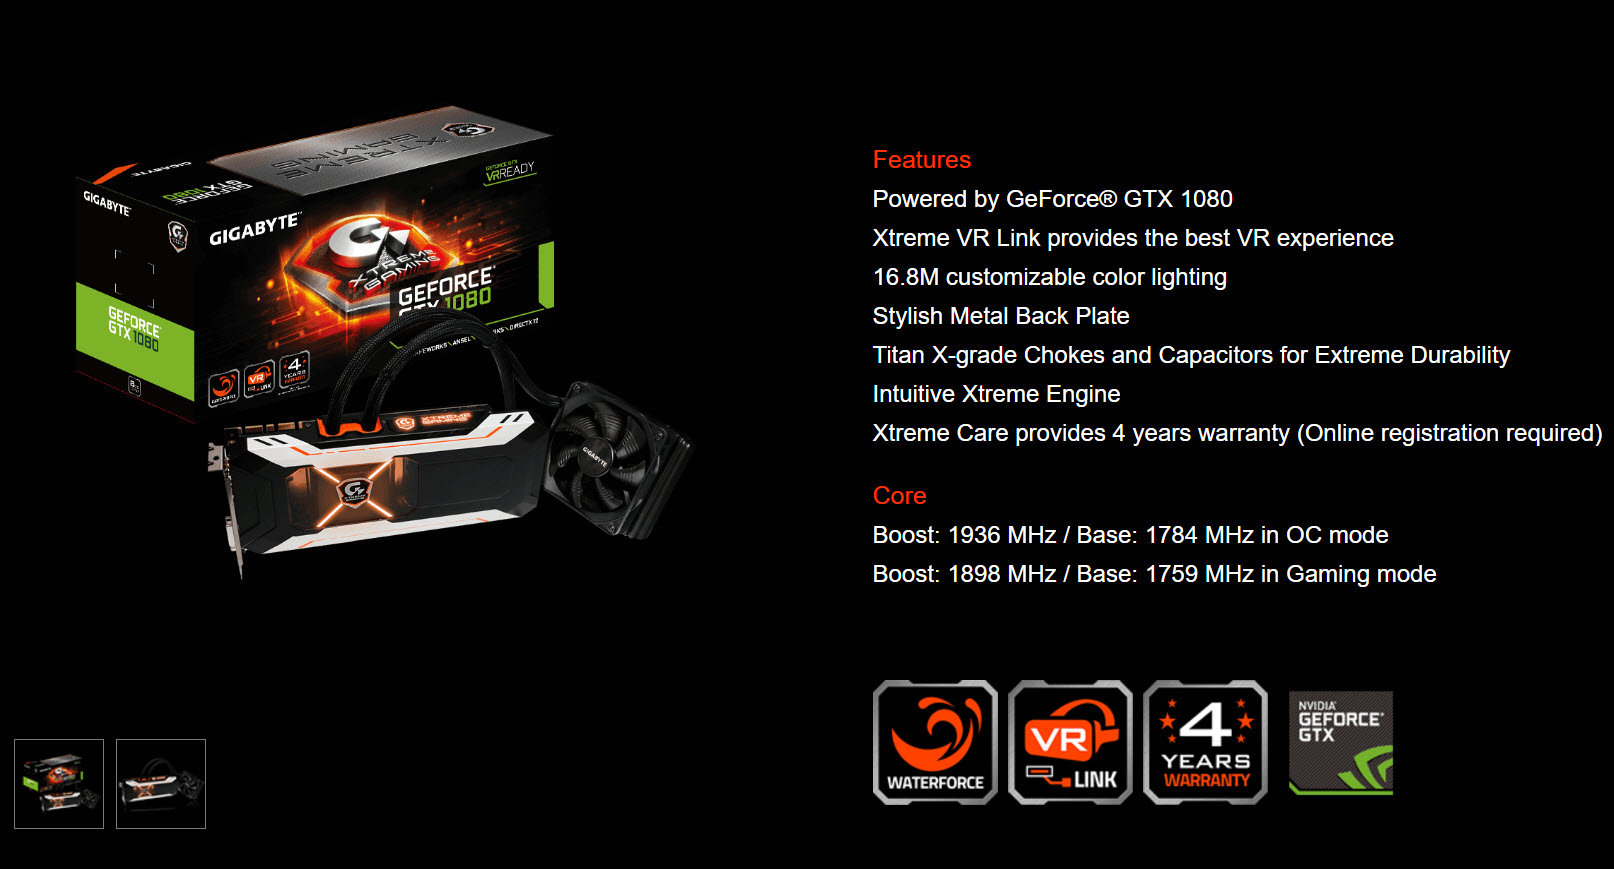 Gigabyte Unleashes GeForce GTX 1080 Xtreme Gaming Water